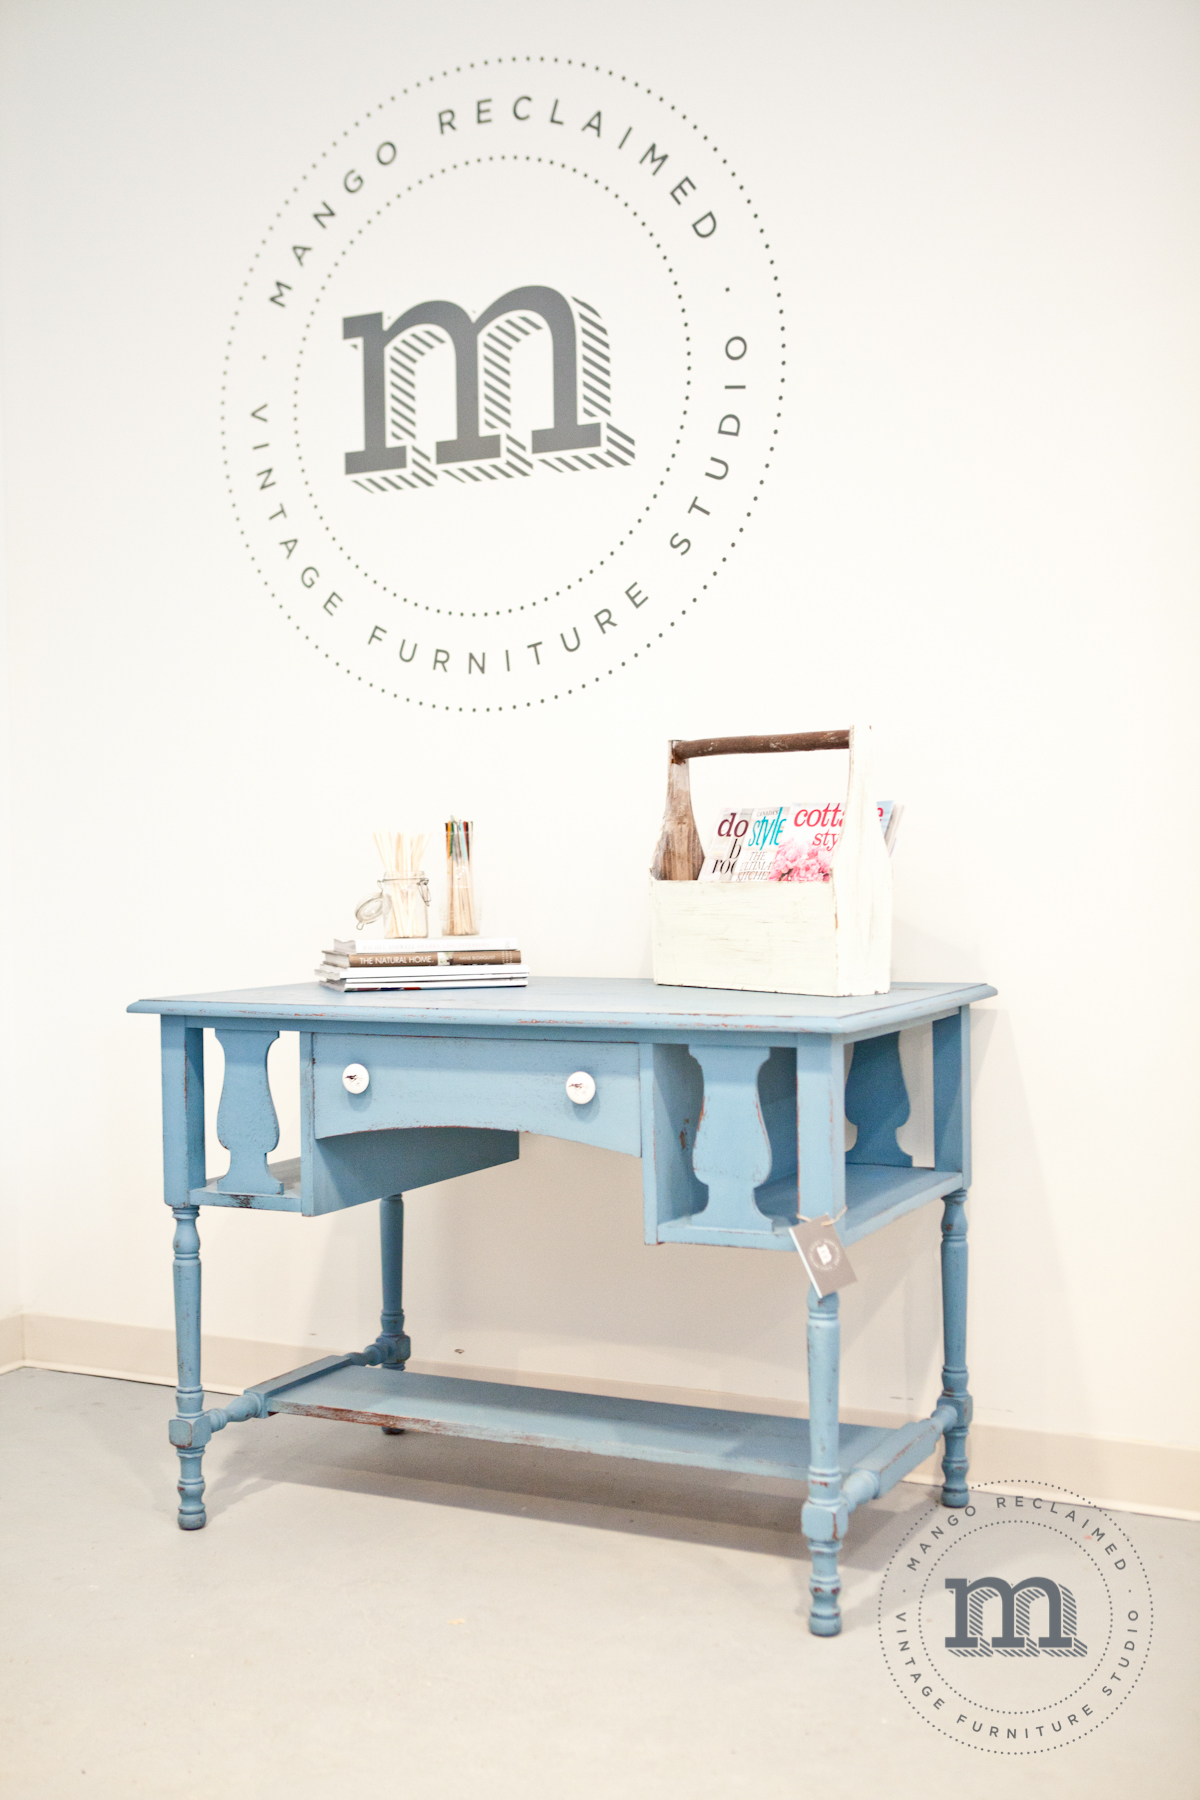 This desk is currently available.